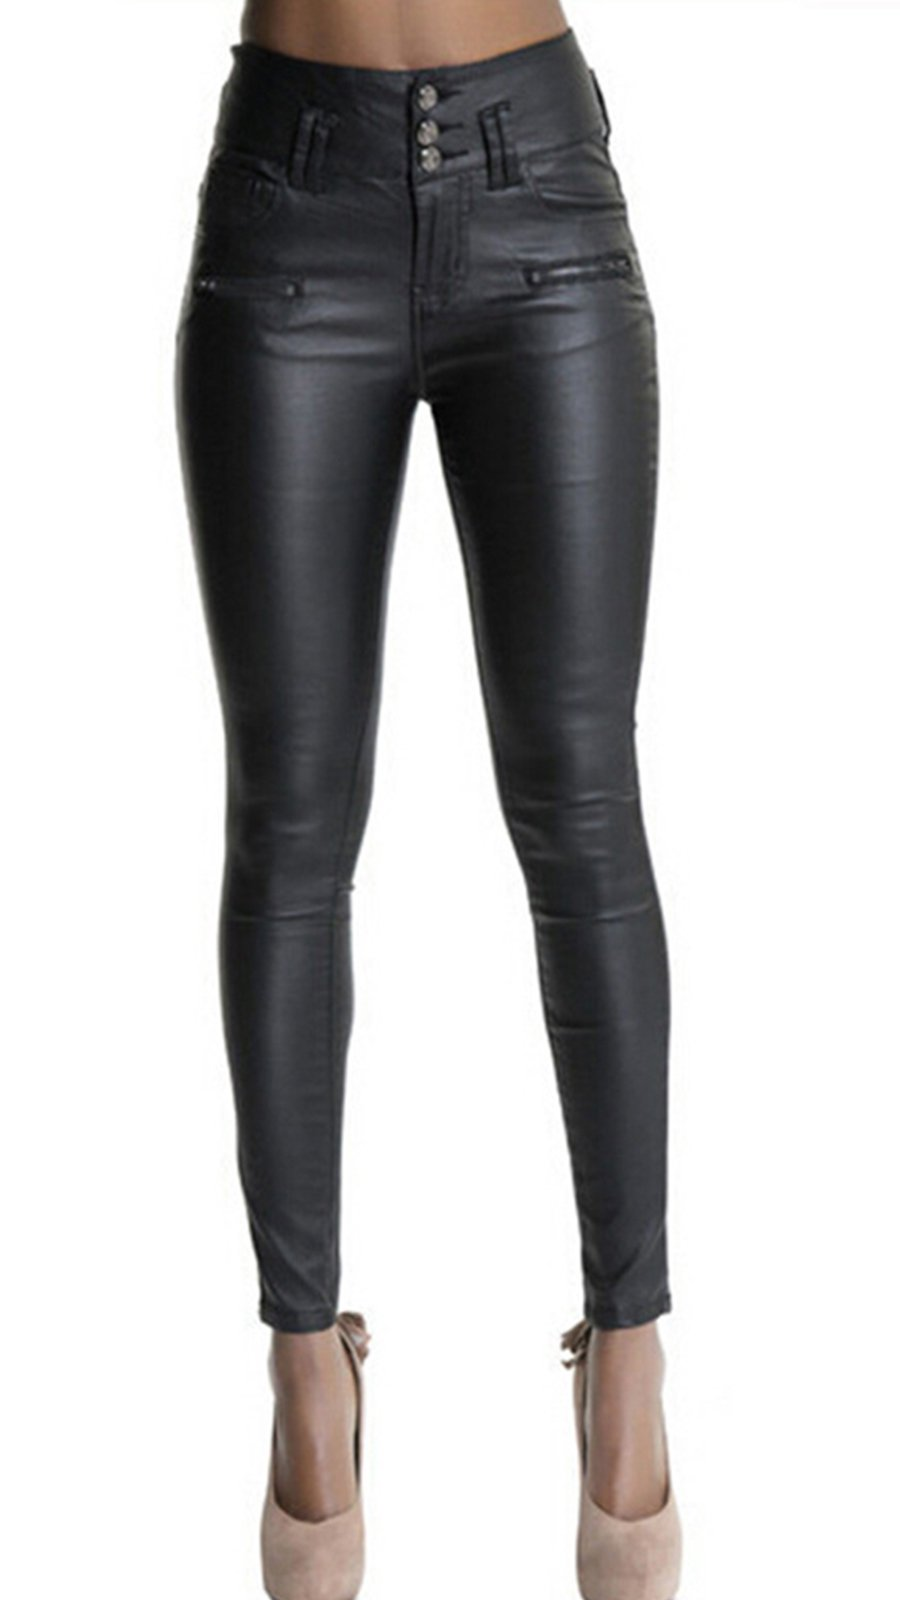 Ecupper Womens Black Leather Pants High Waisted Skinny Coated Leggings 29'' Inseam-Regular L-38